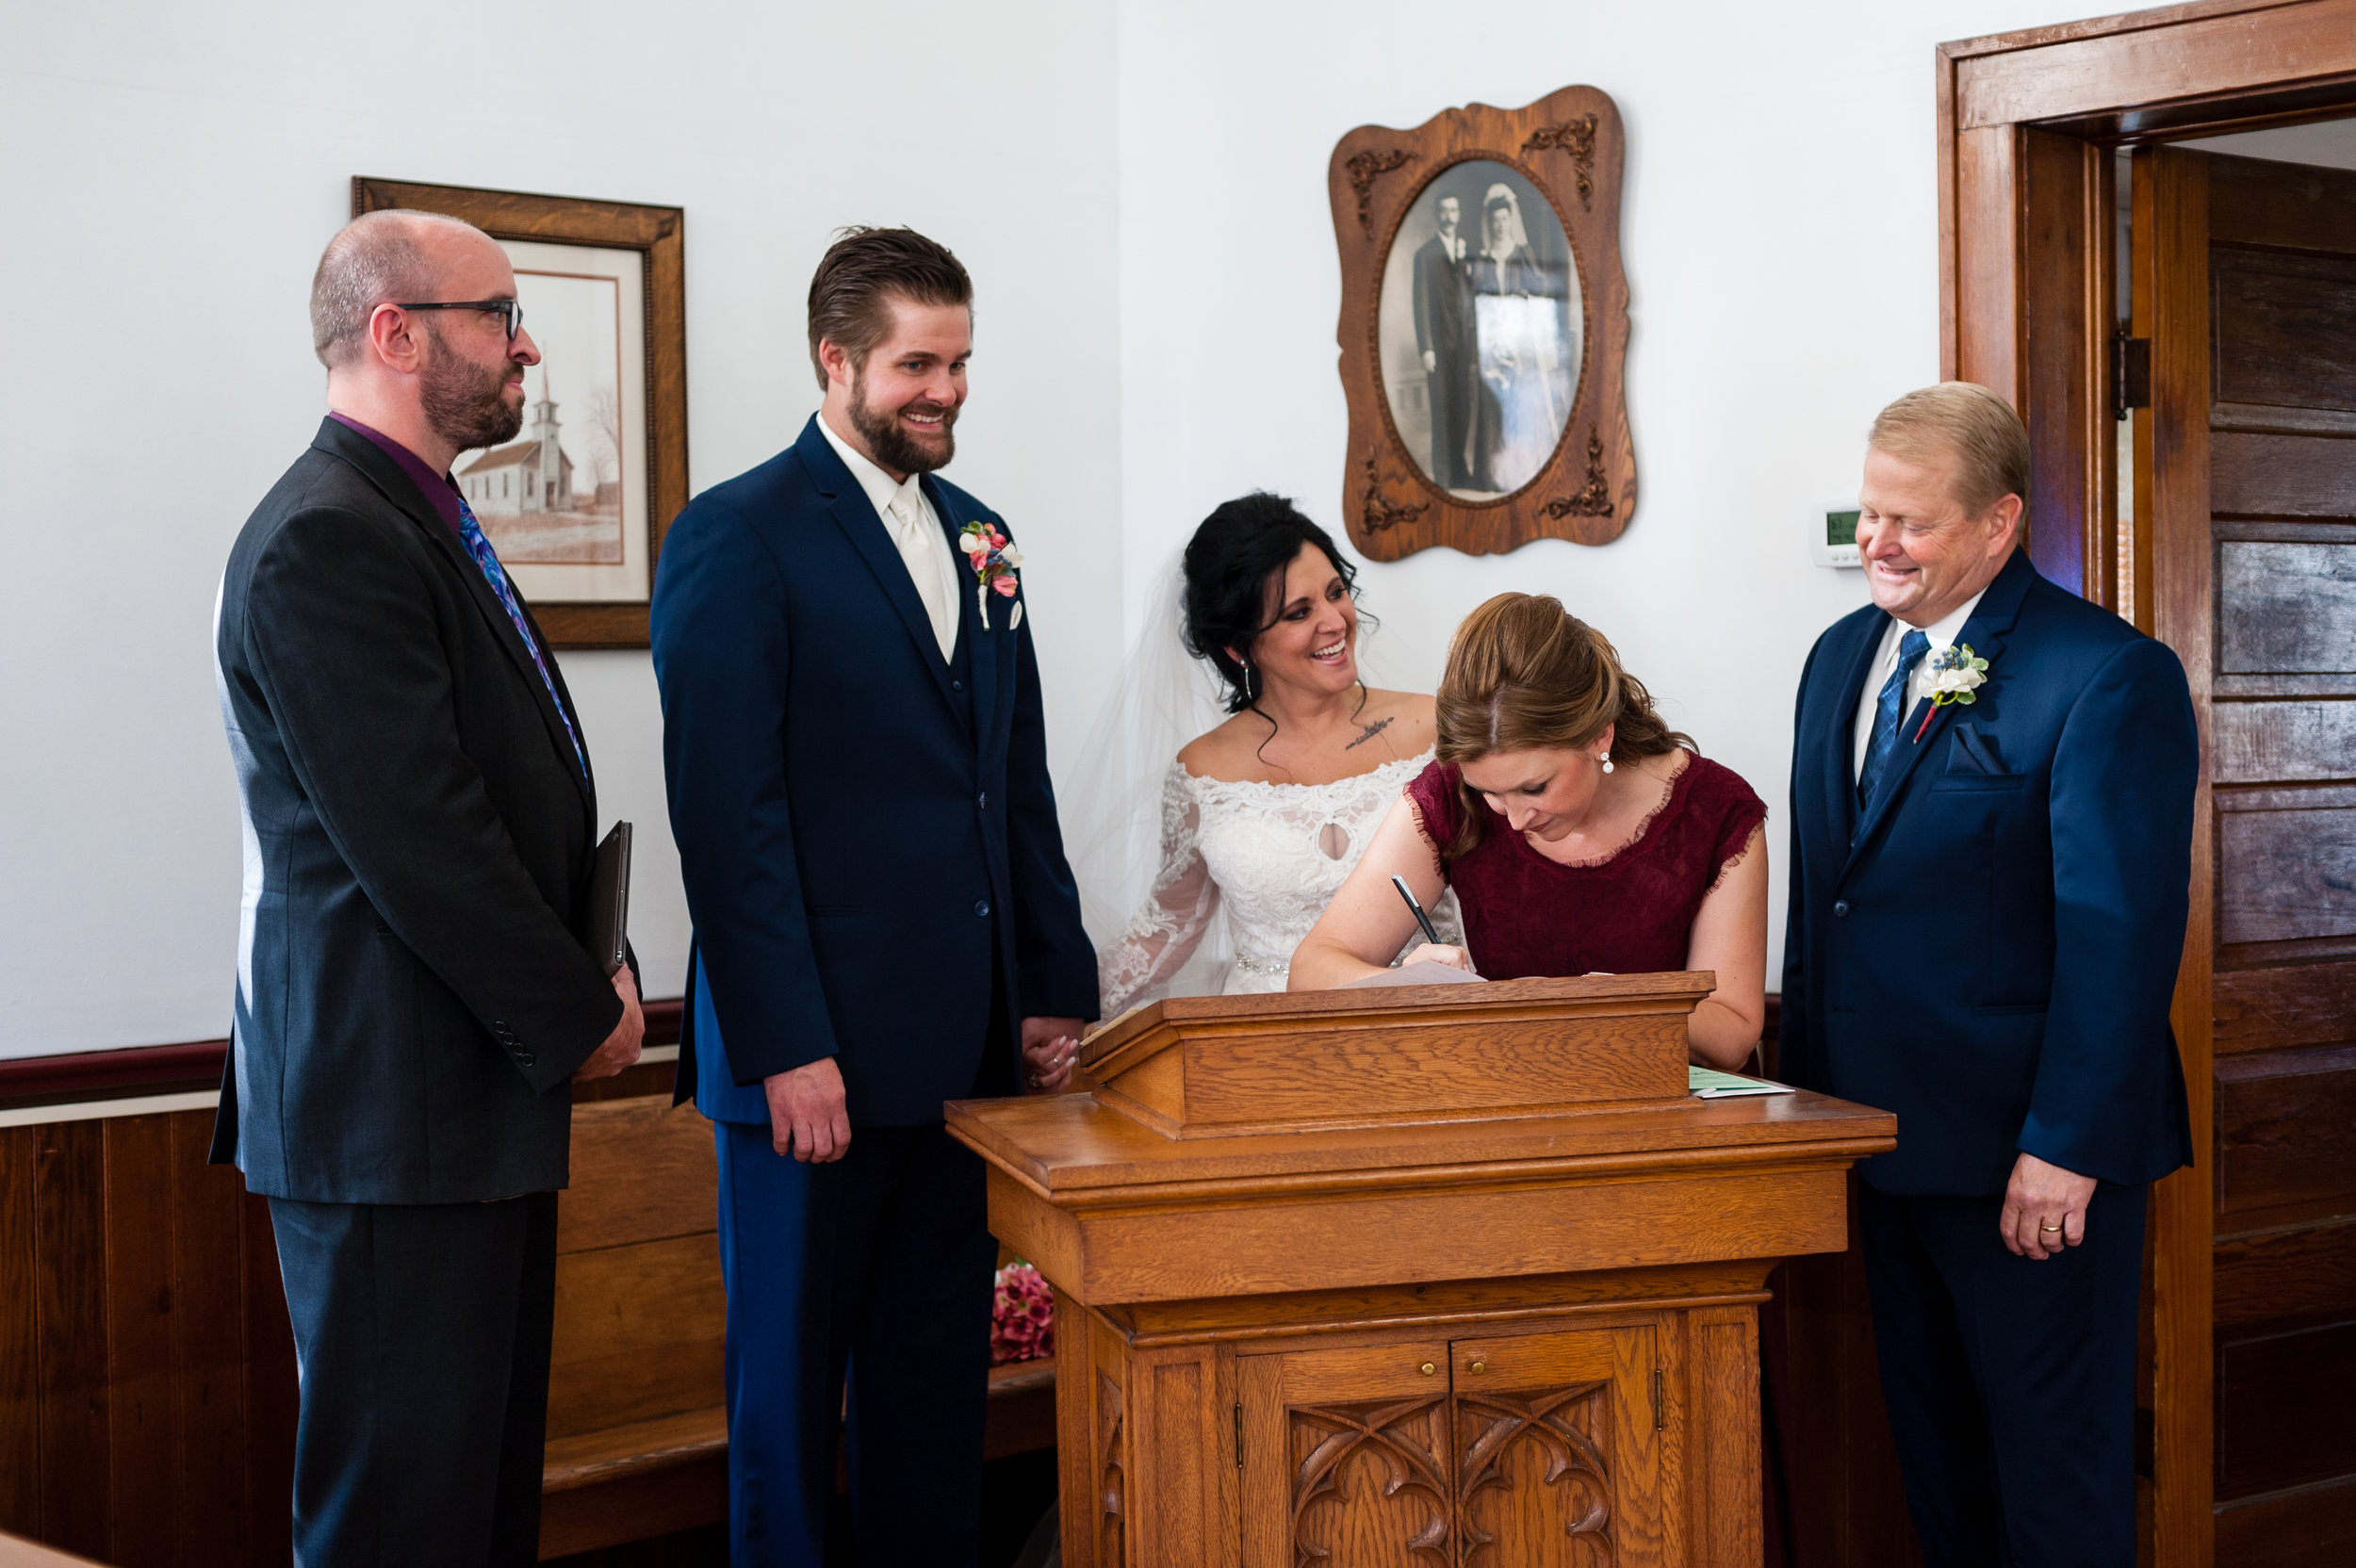 How to Change Your Last Name After Your Wedding | KLEM Studios, Wedding Photographer